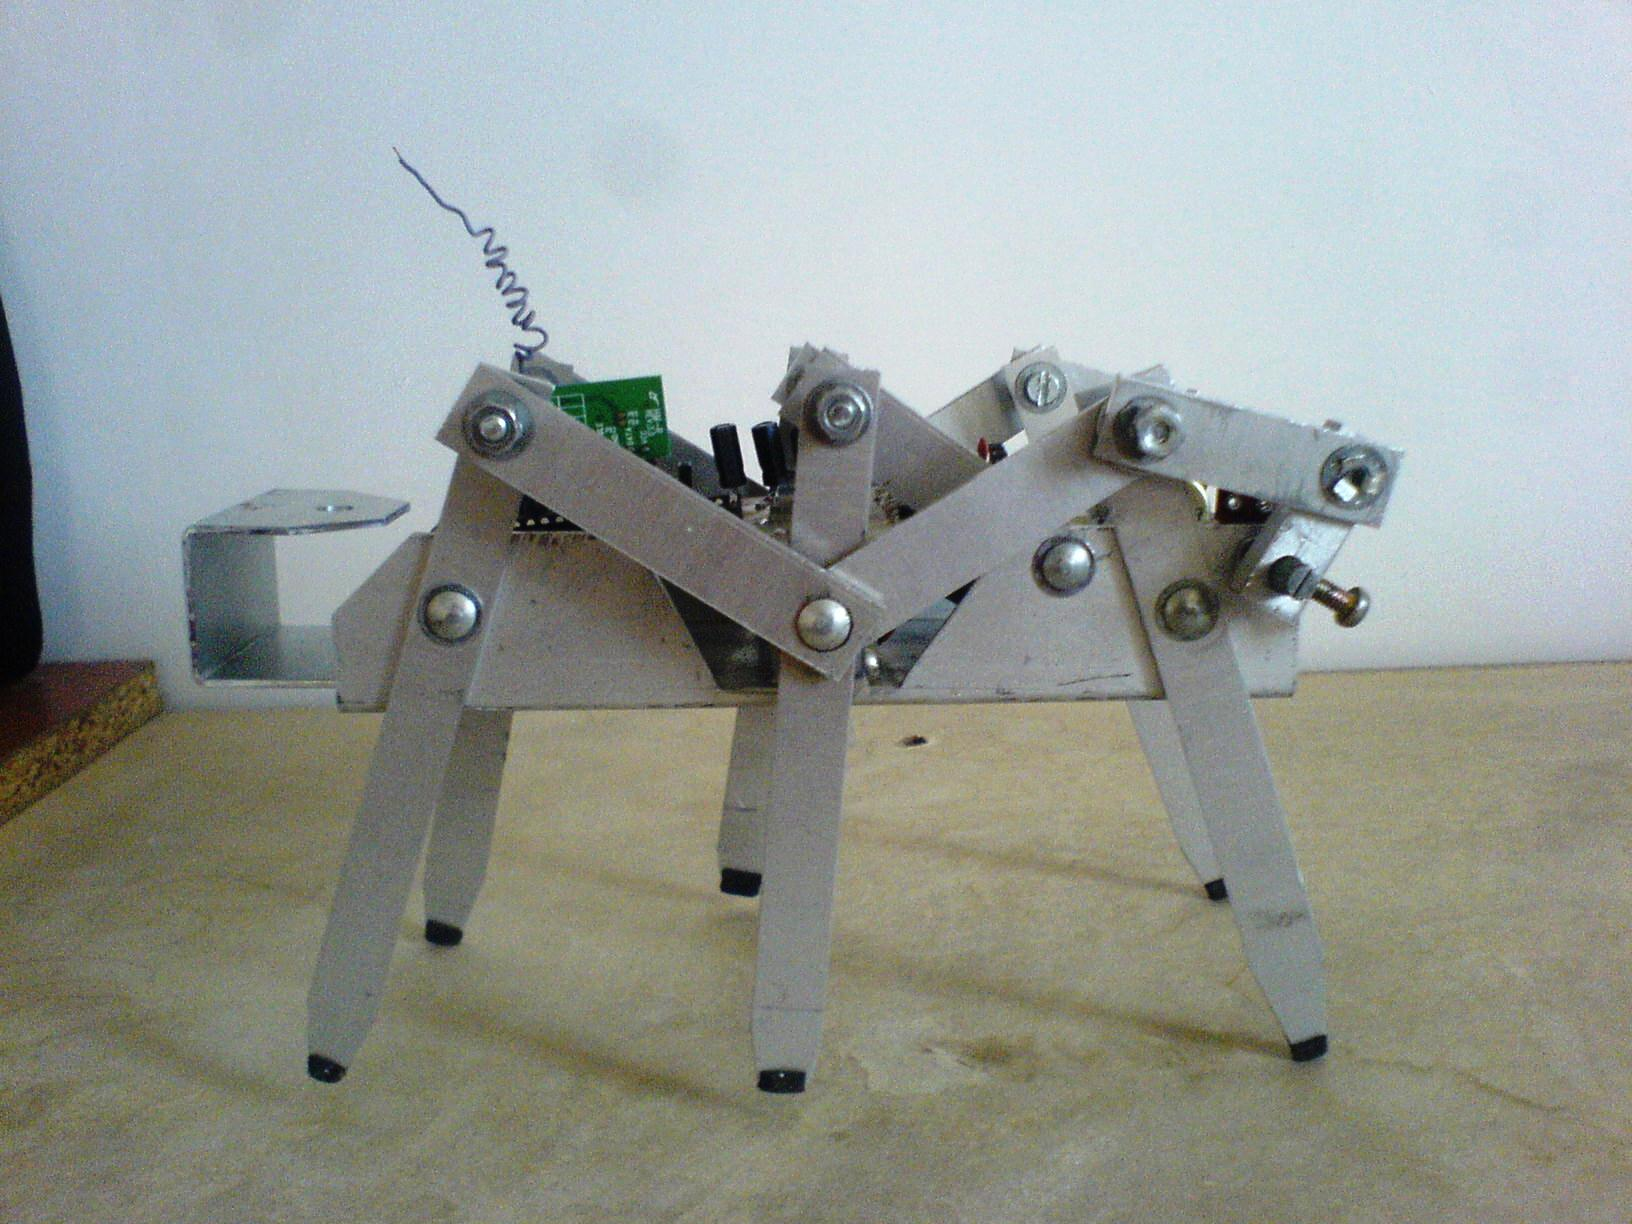 6-Legged Robot to Mimic Ant Locomotion